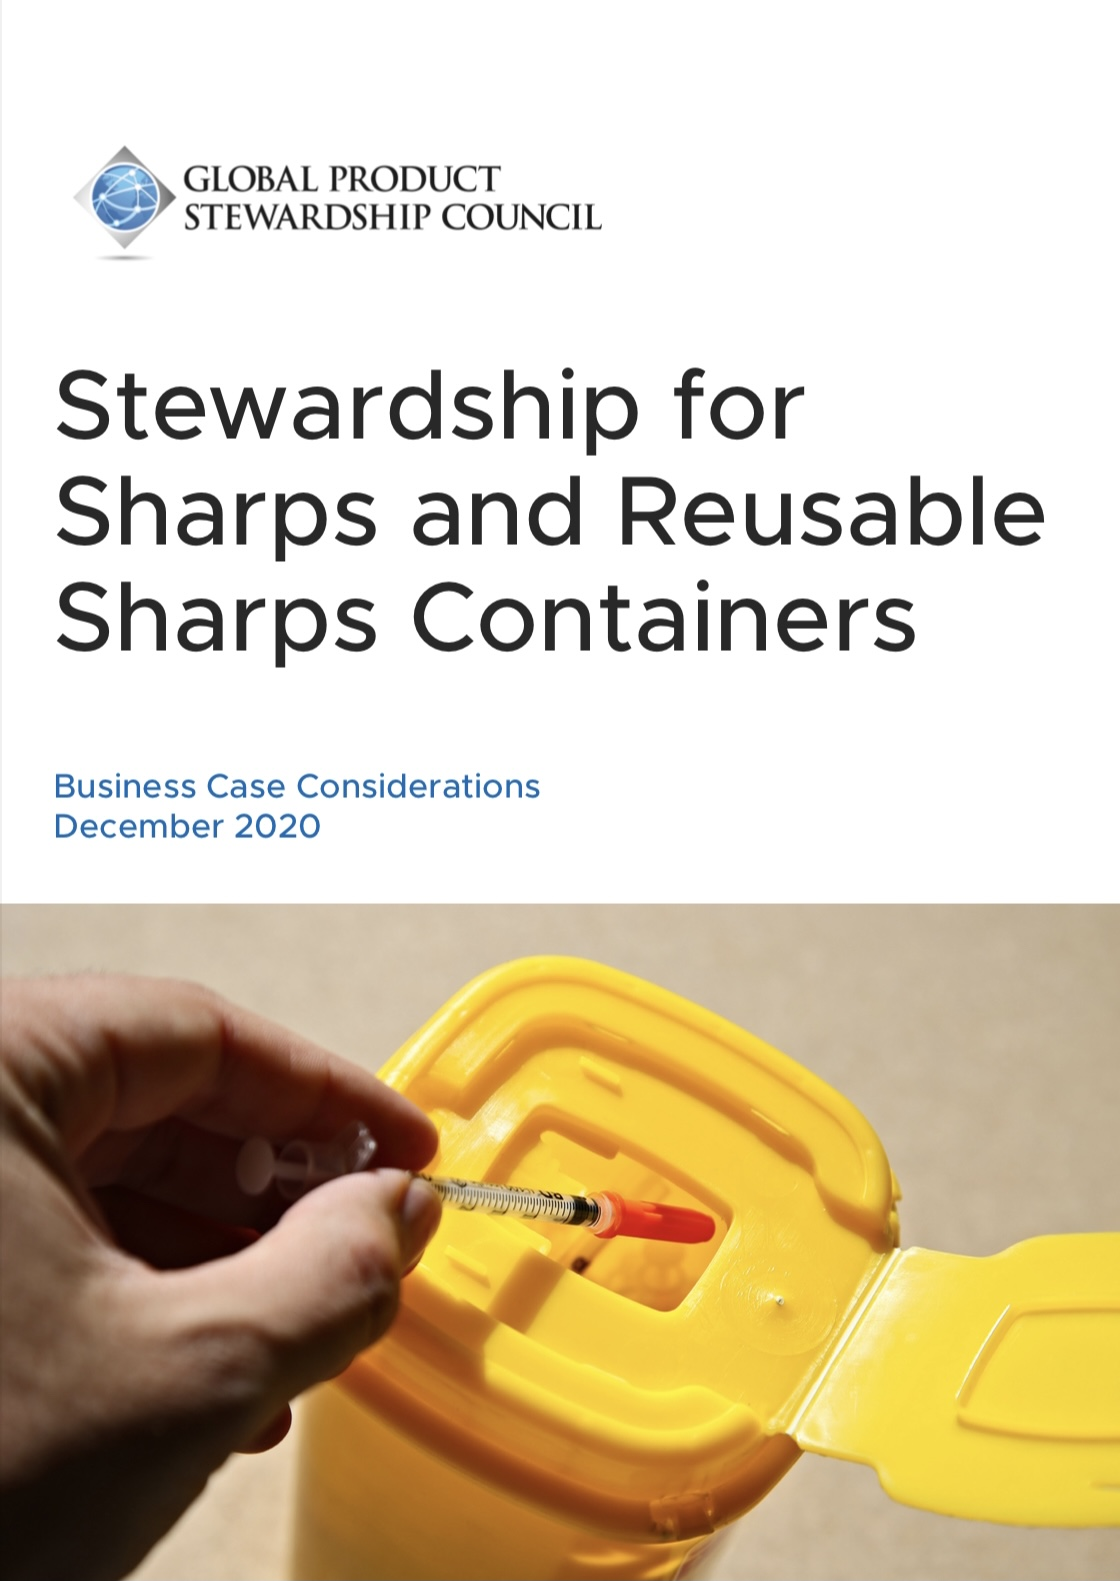 Business Case Considerations for Sharps Stewardship